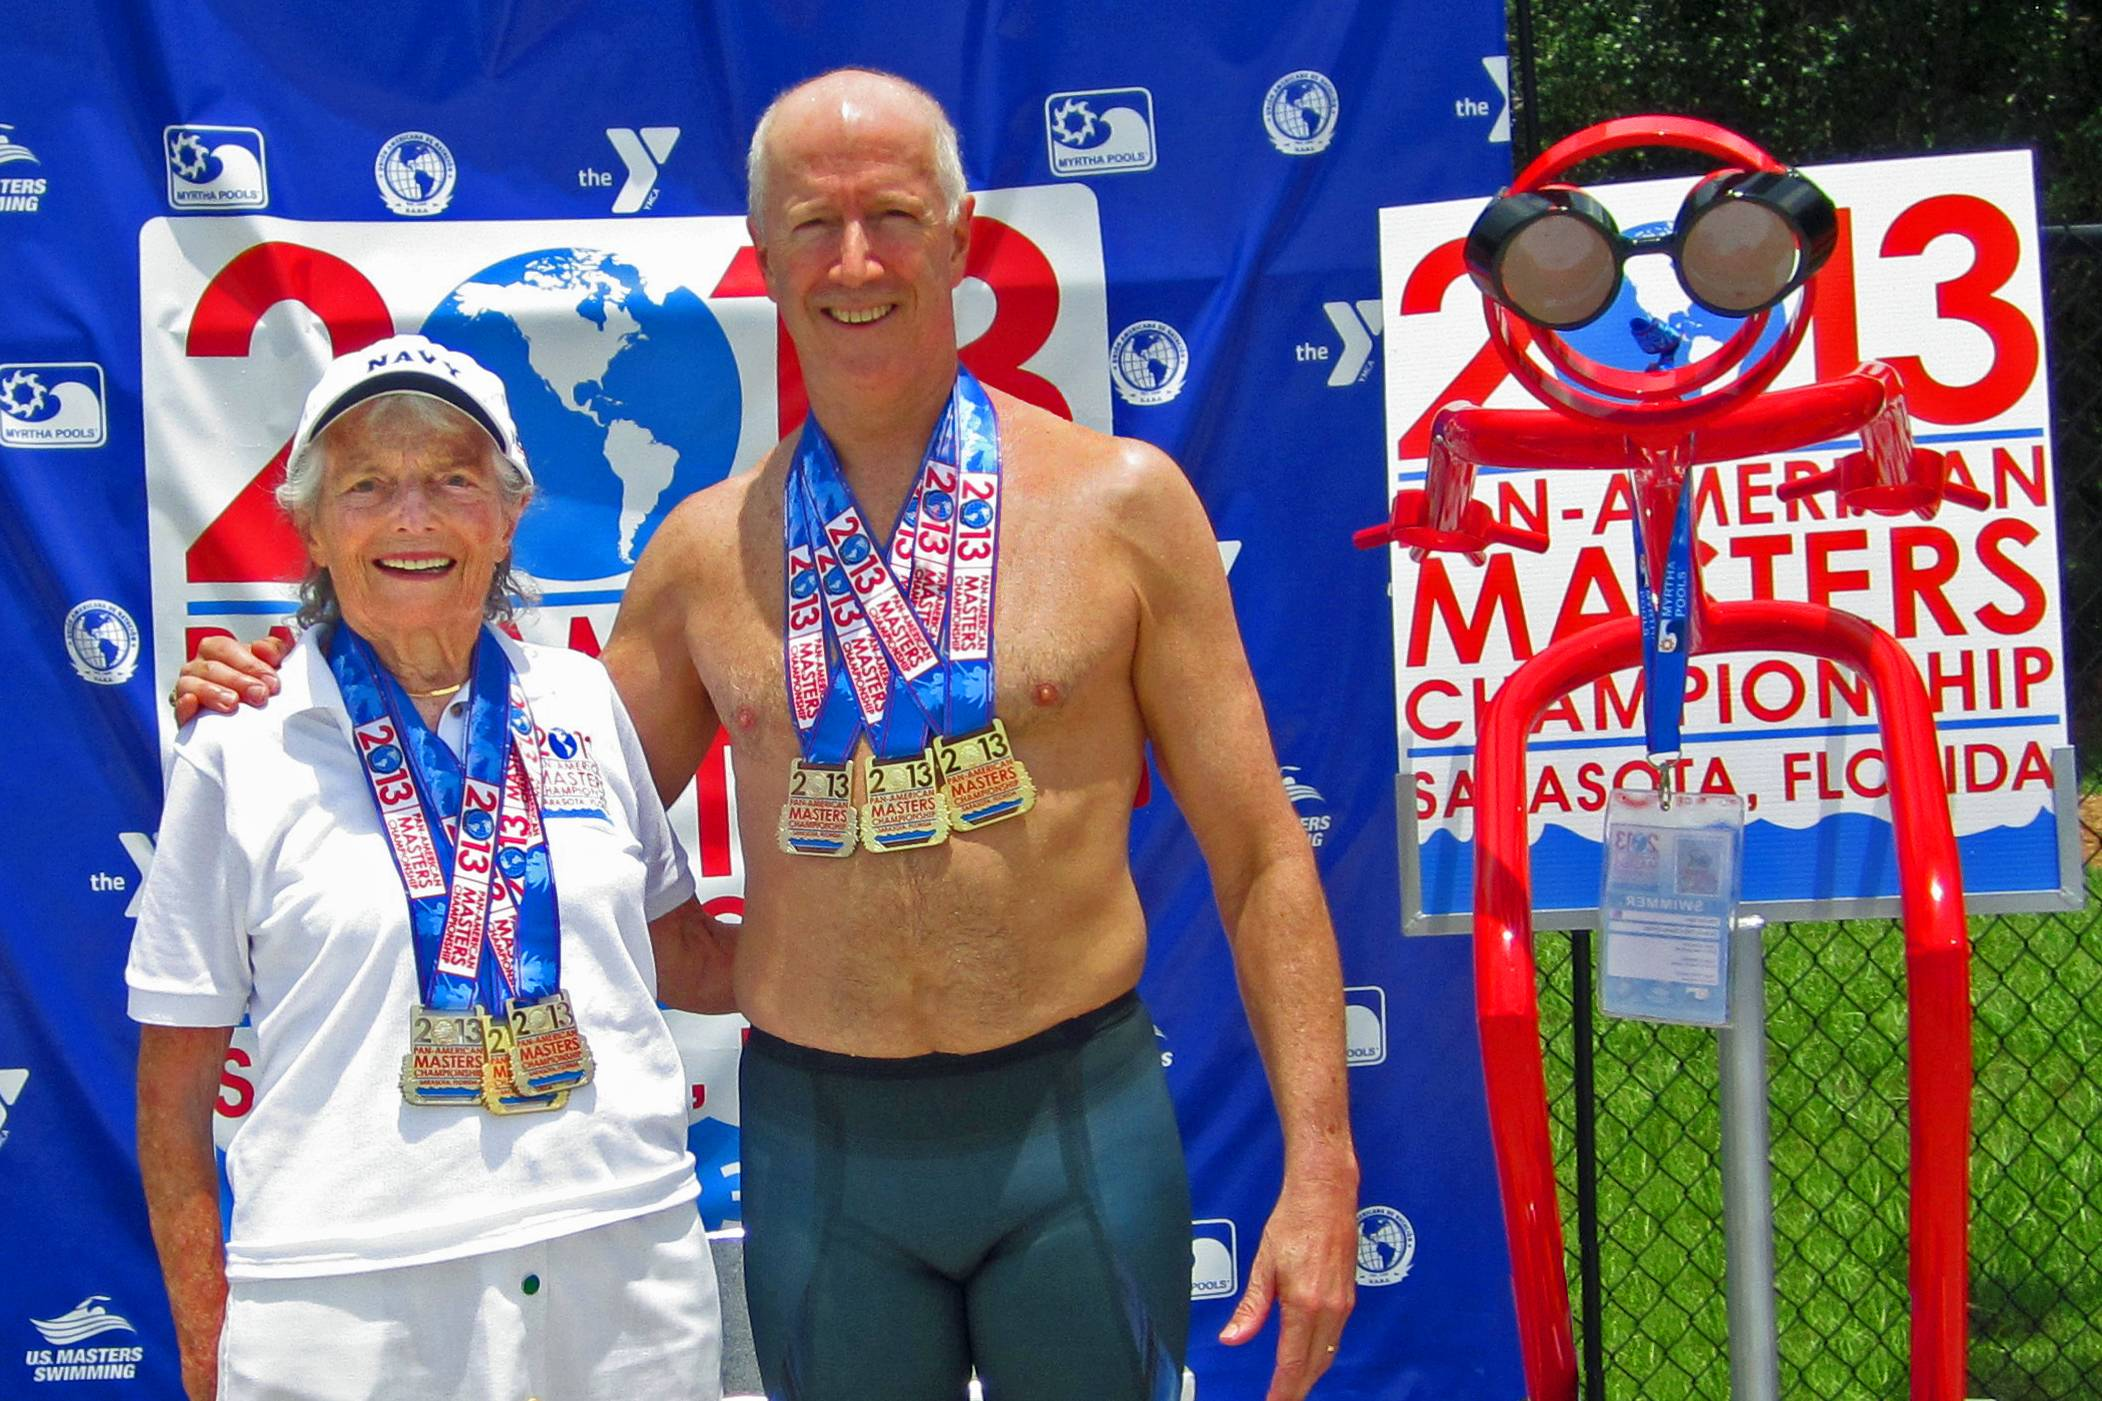 Nancy and Phil Dodson, mother and son show off their three Pan Am gold medals in Sarasota FL  6/11/13